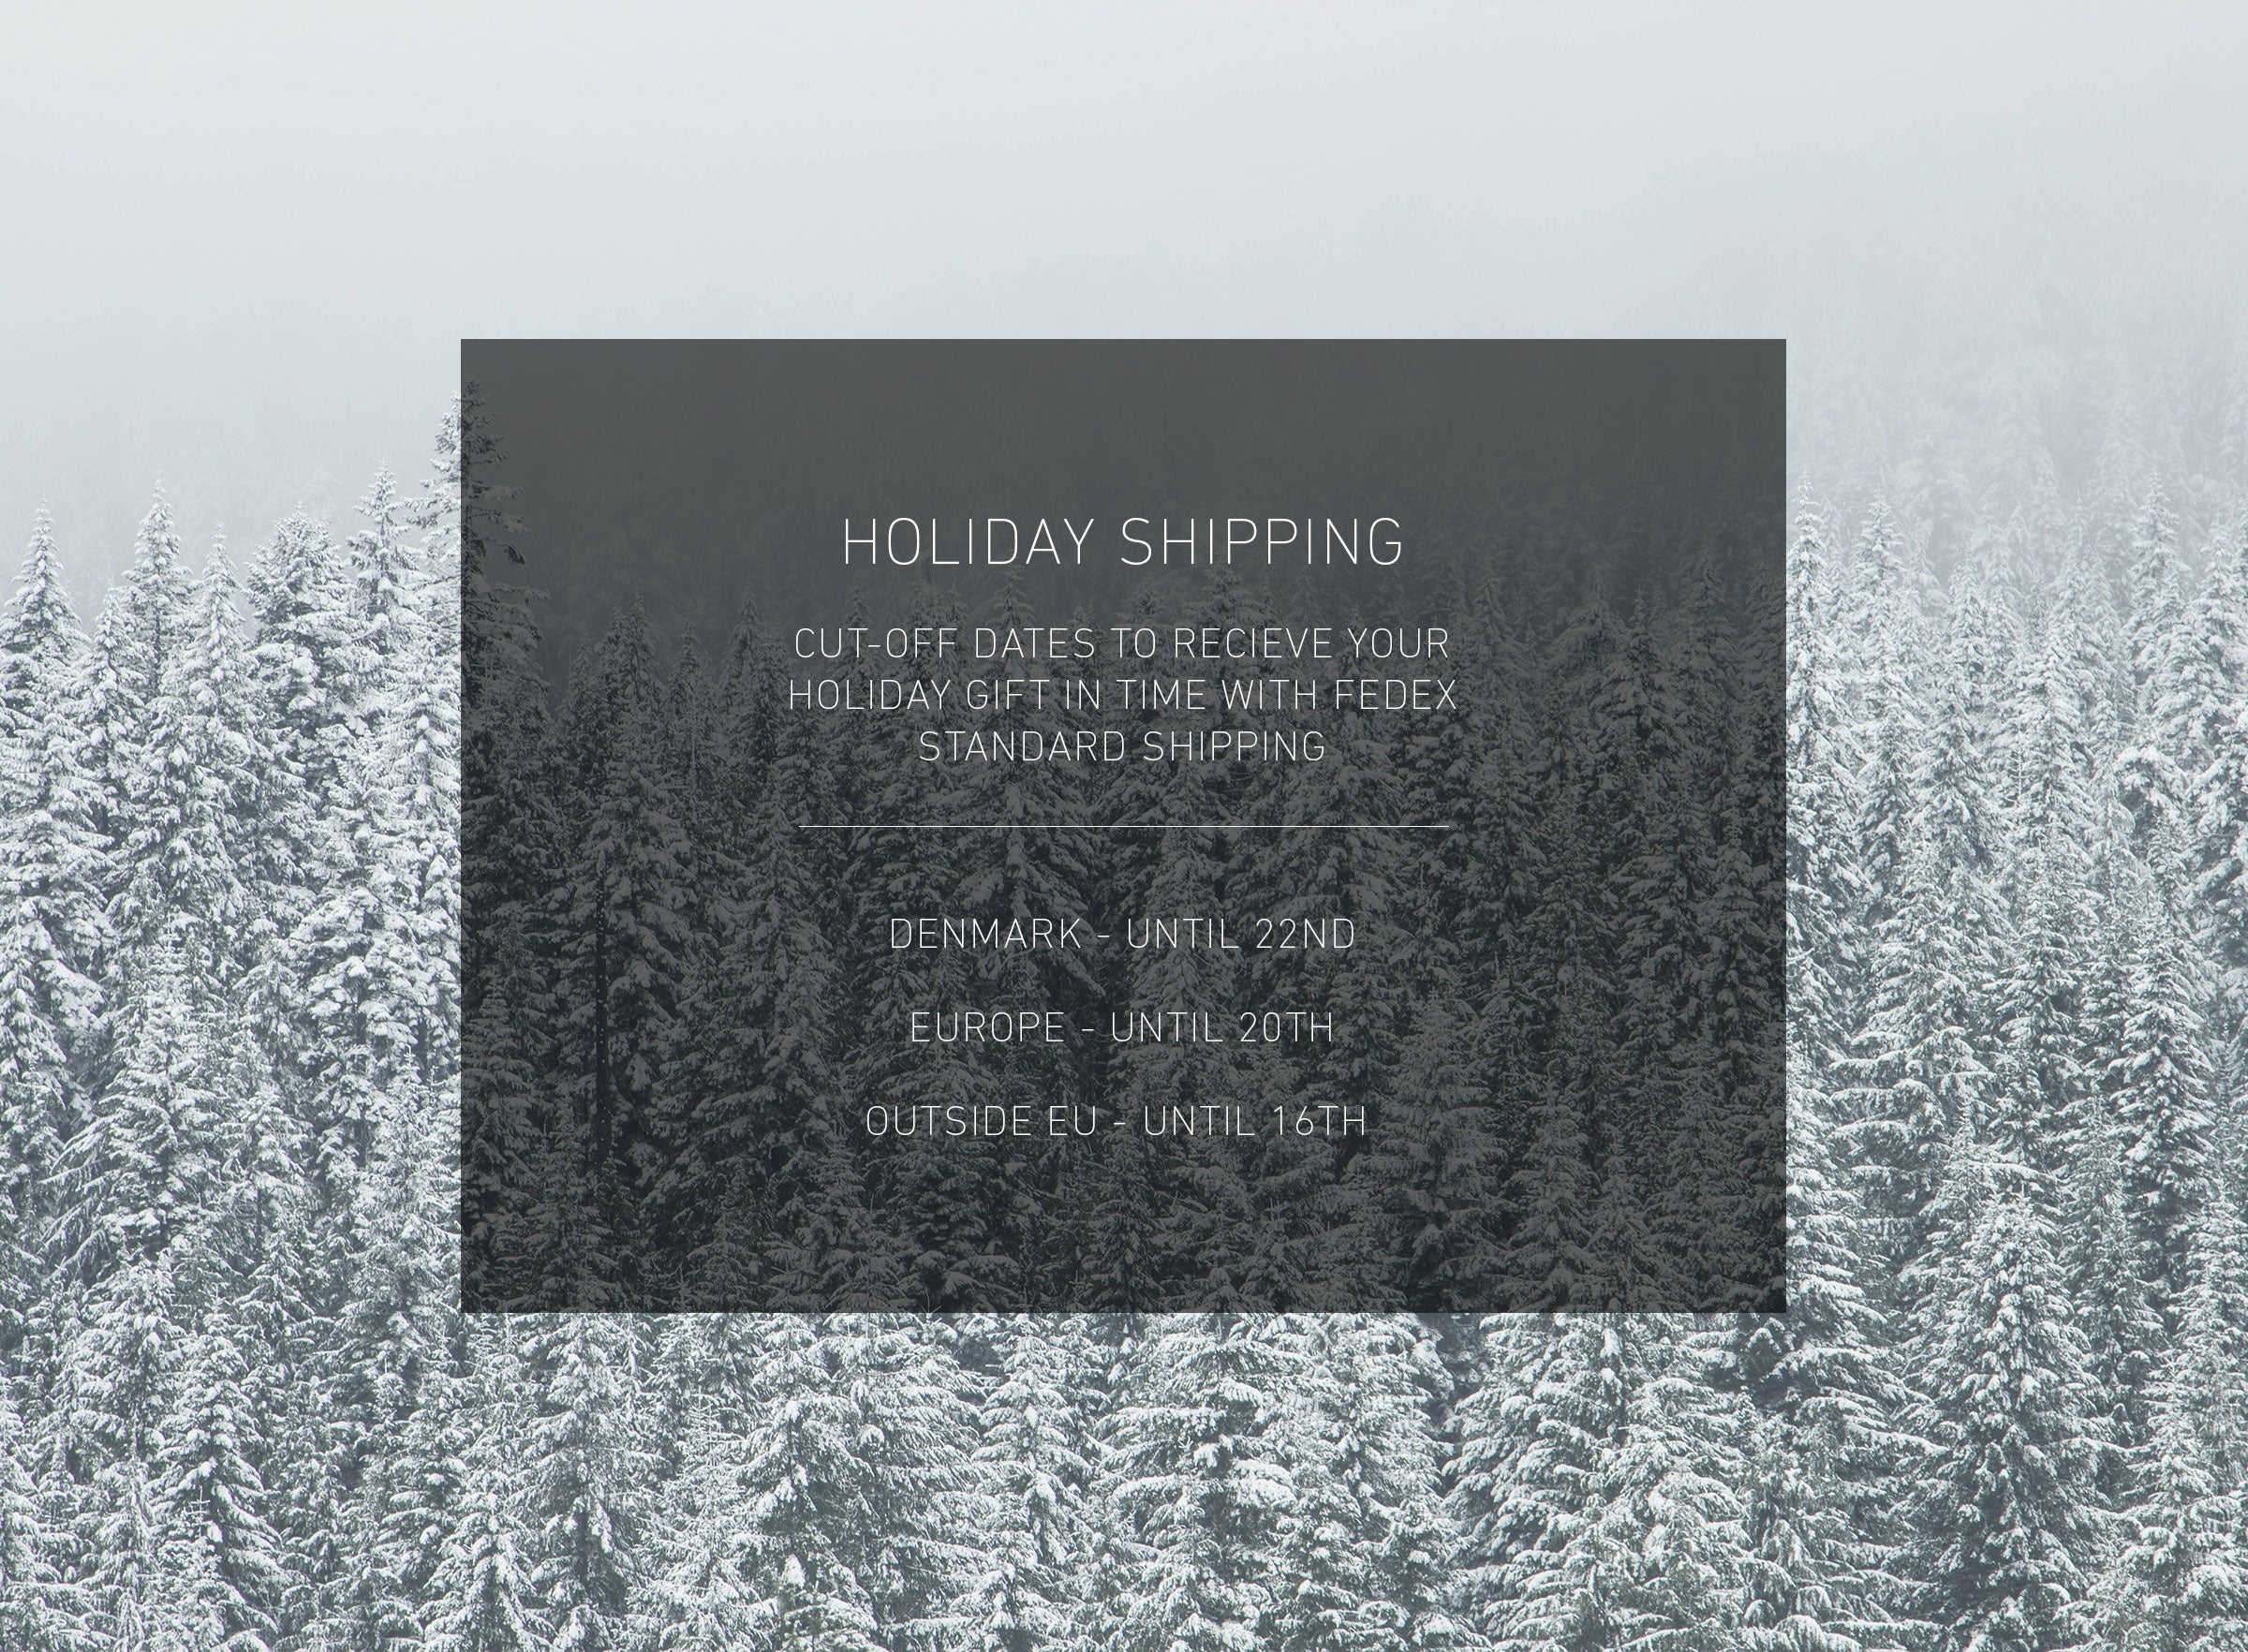 HOLIDAY SHIPPING INFORMATION